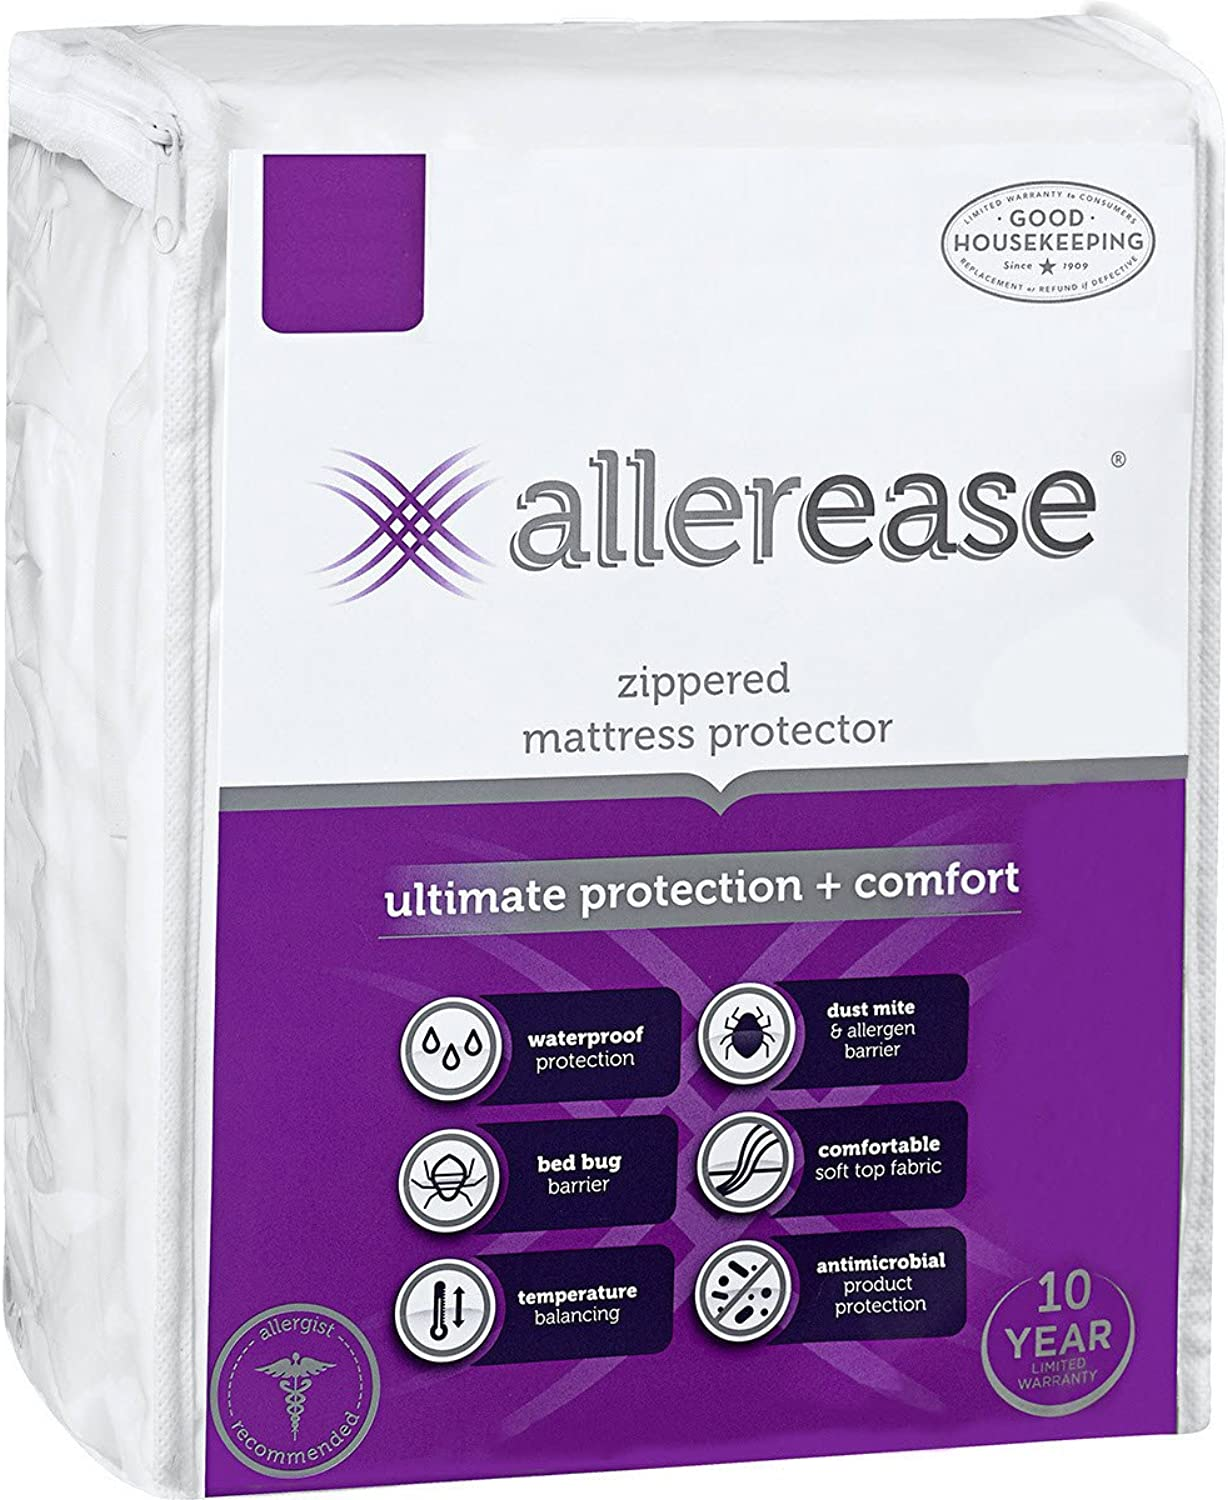 AllerEase Ultimate Predection and Comfort Waterproof, Bed Bug, Antimicrobial Zippered Mattress Predector - Prevent Collection of Dust Mites and Other Allergens, Vinyl Free, Hypoallergenic, Twin Sized